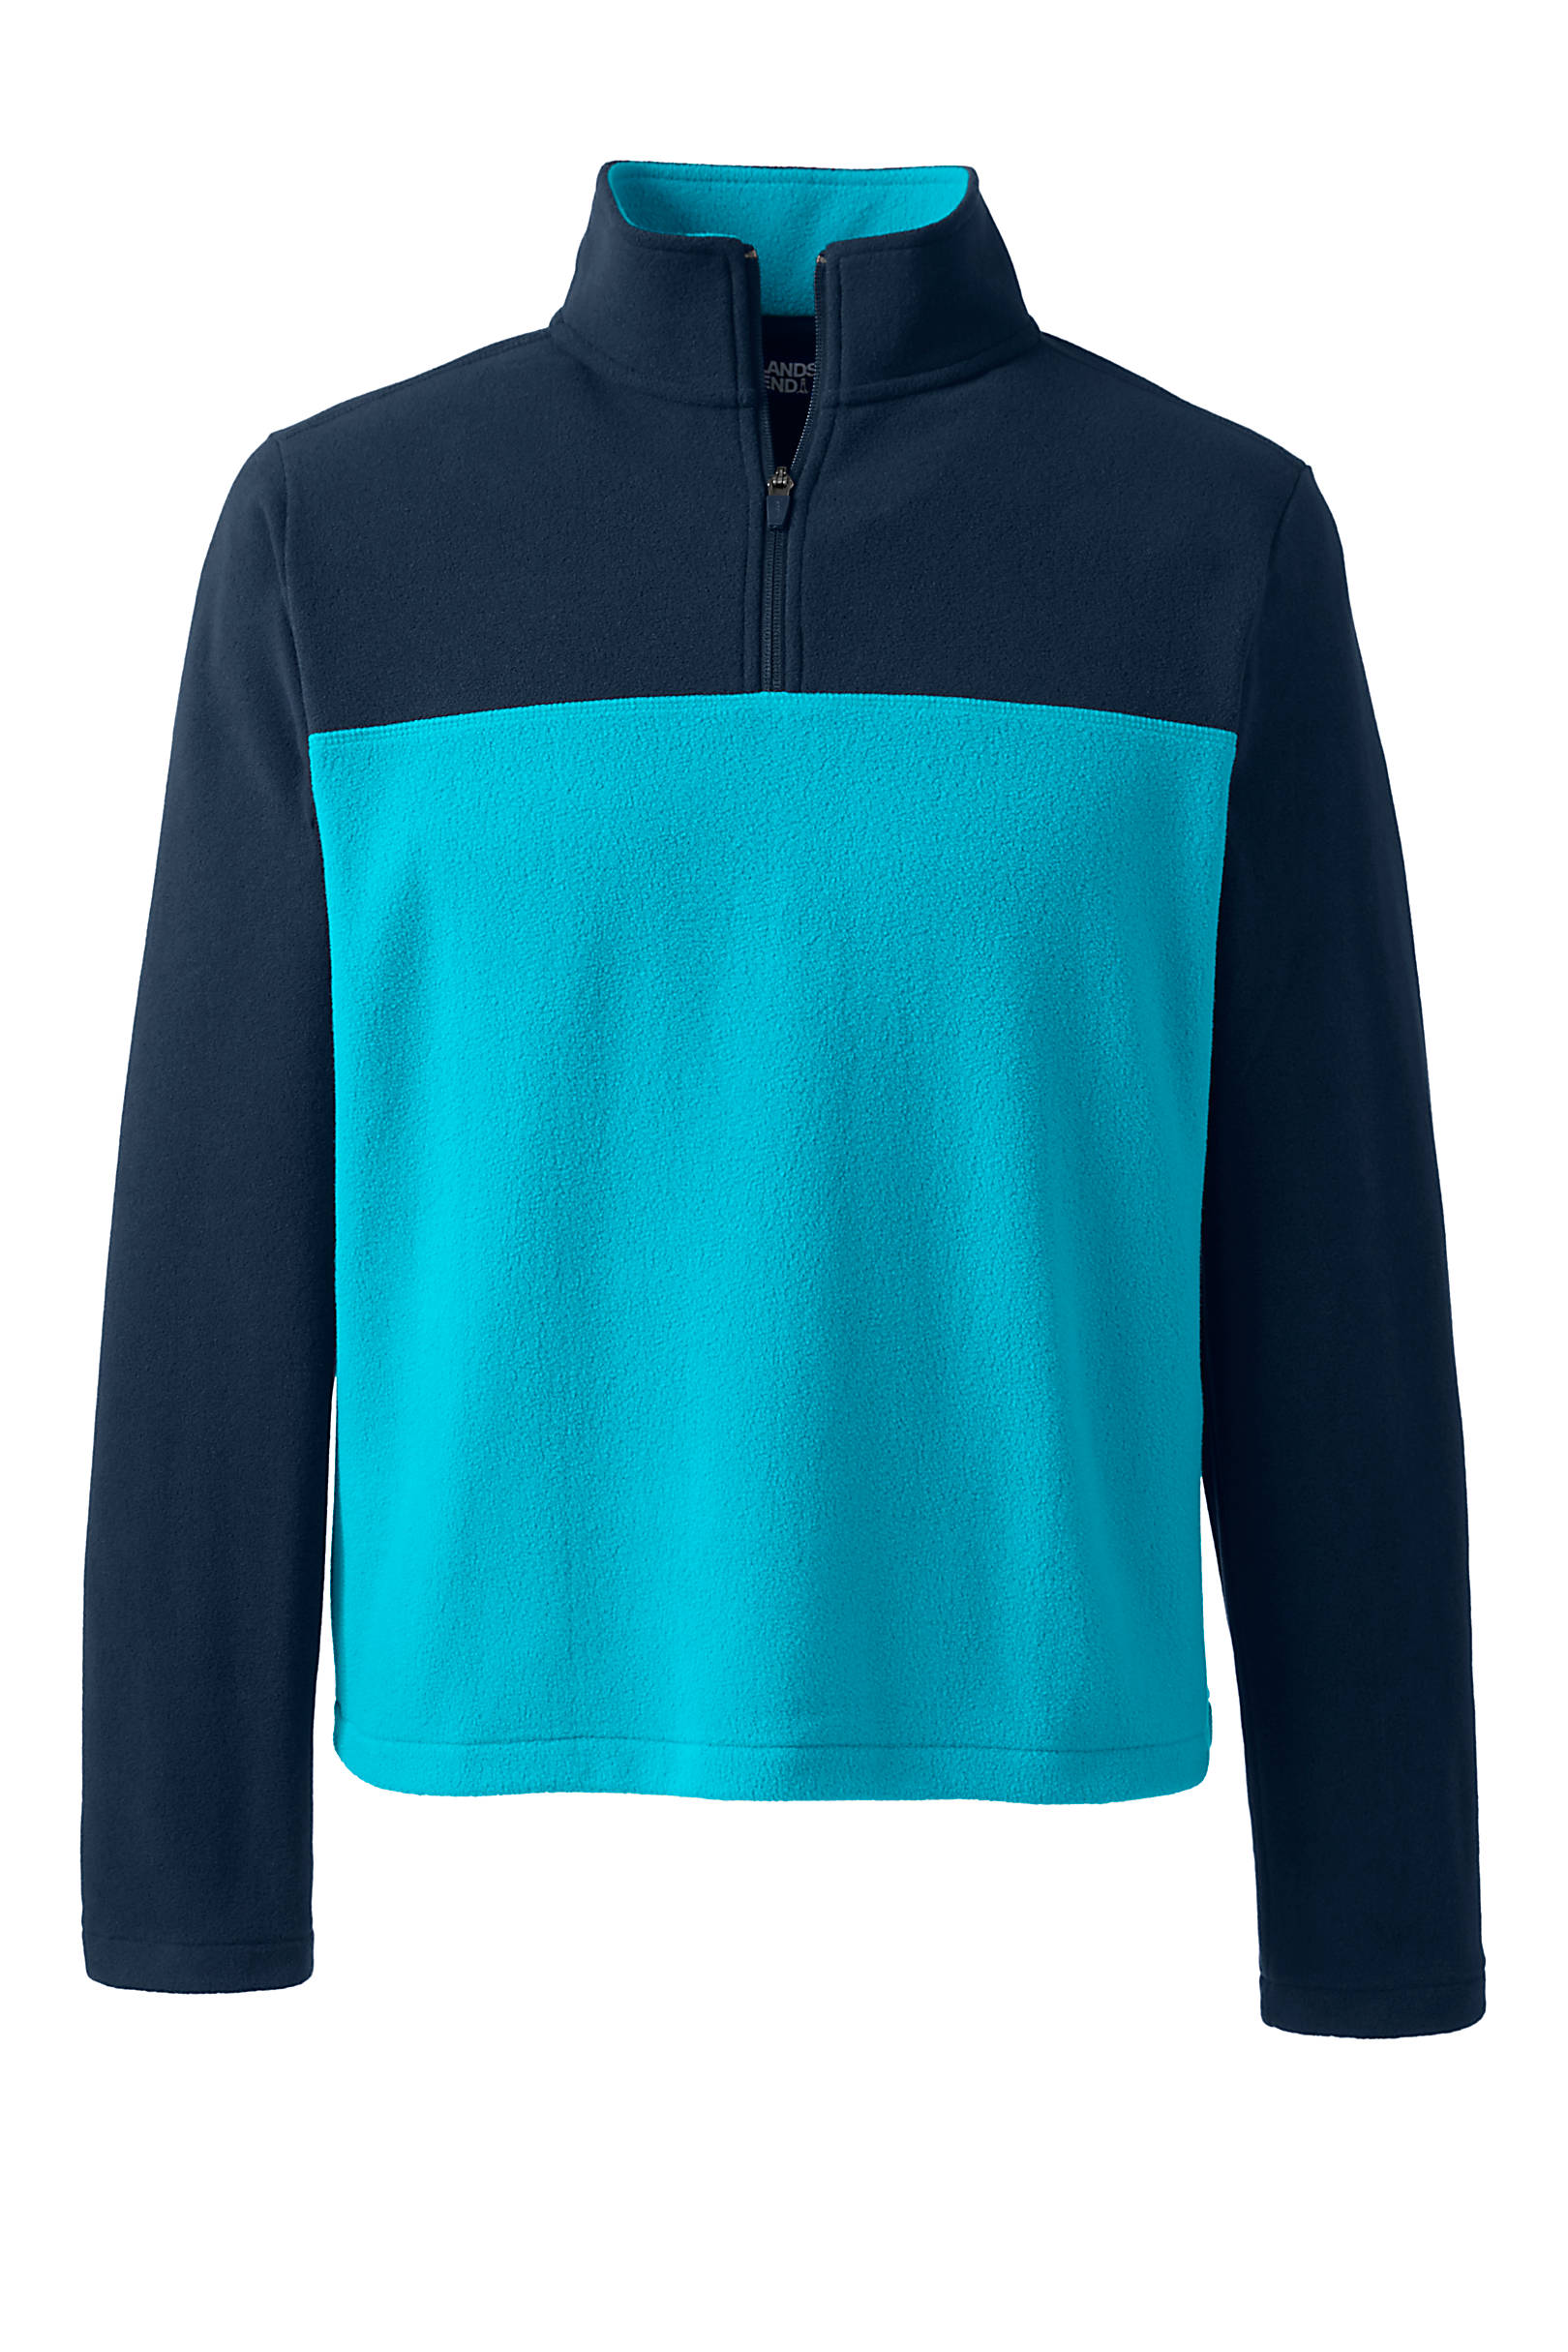 Lands' End Men's Fleece Quarter Zip